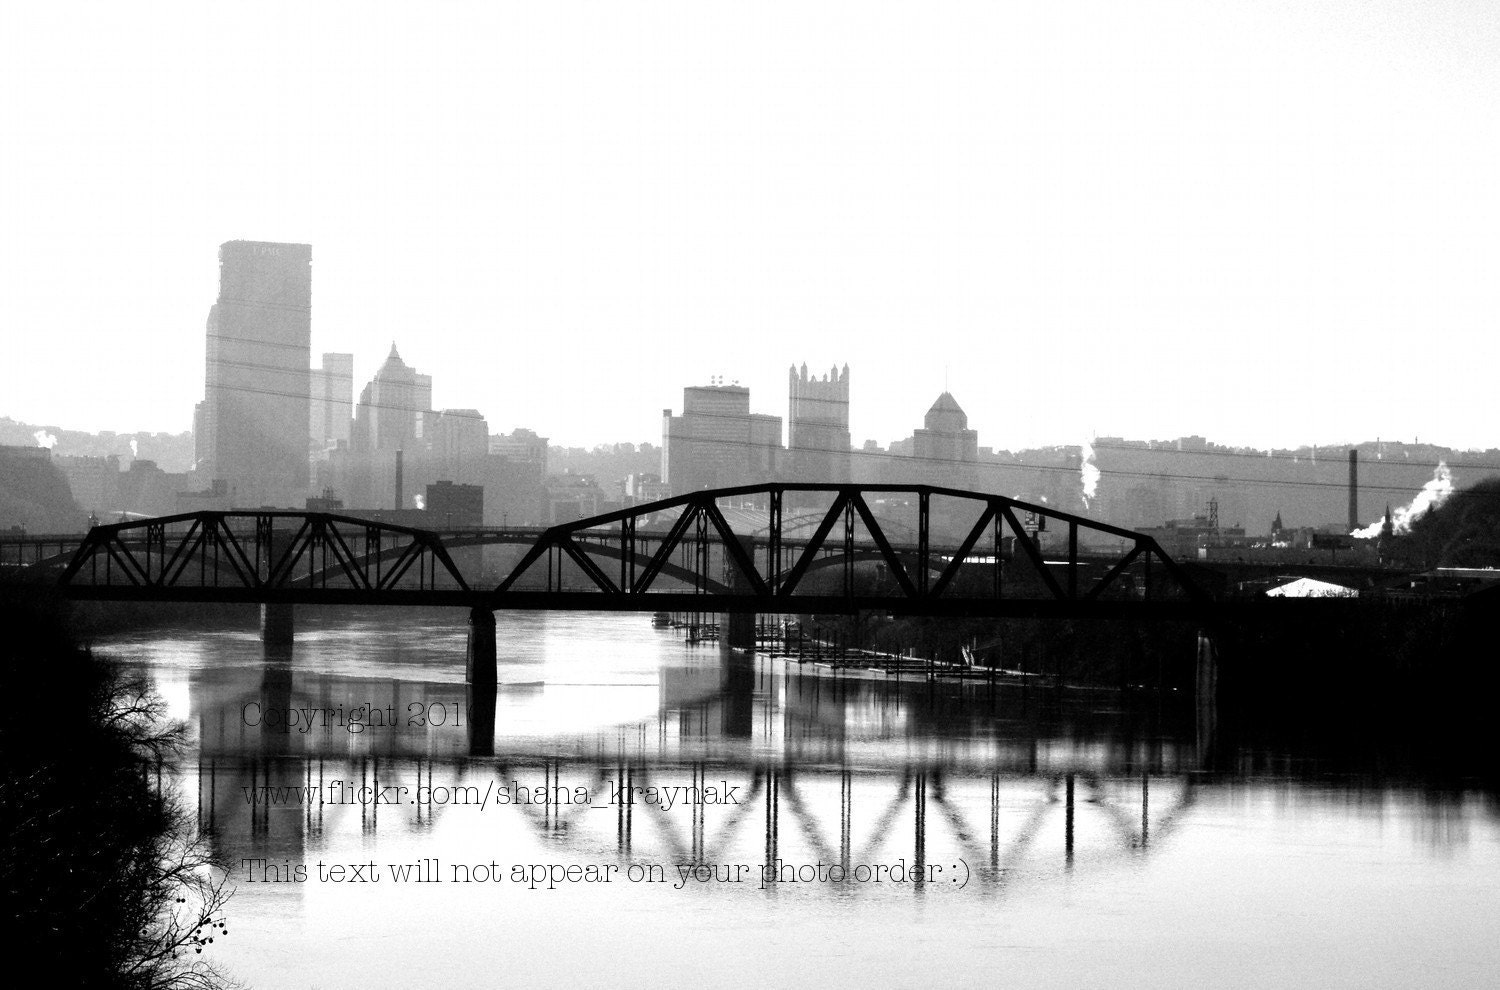 black and white pittsburgh skyline photo - smk16